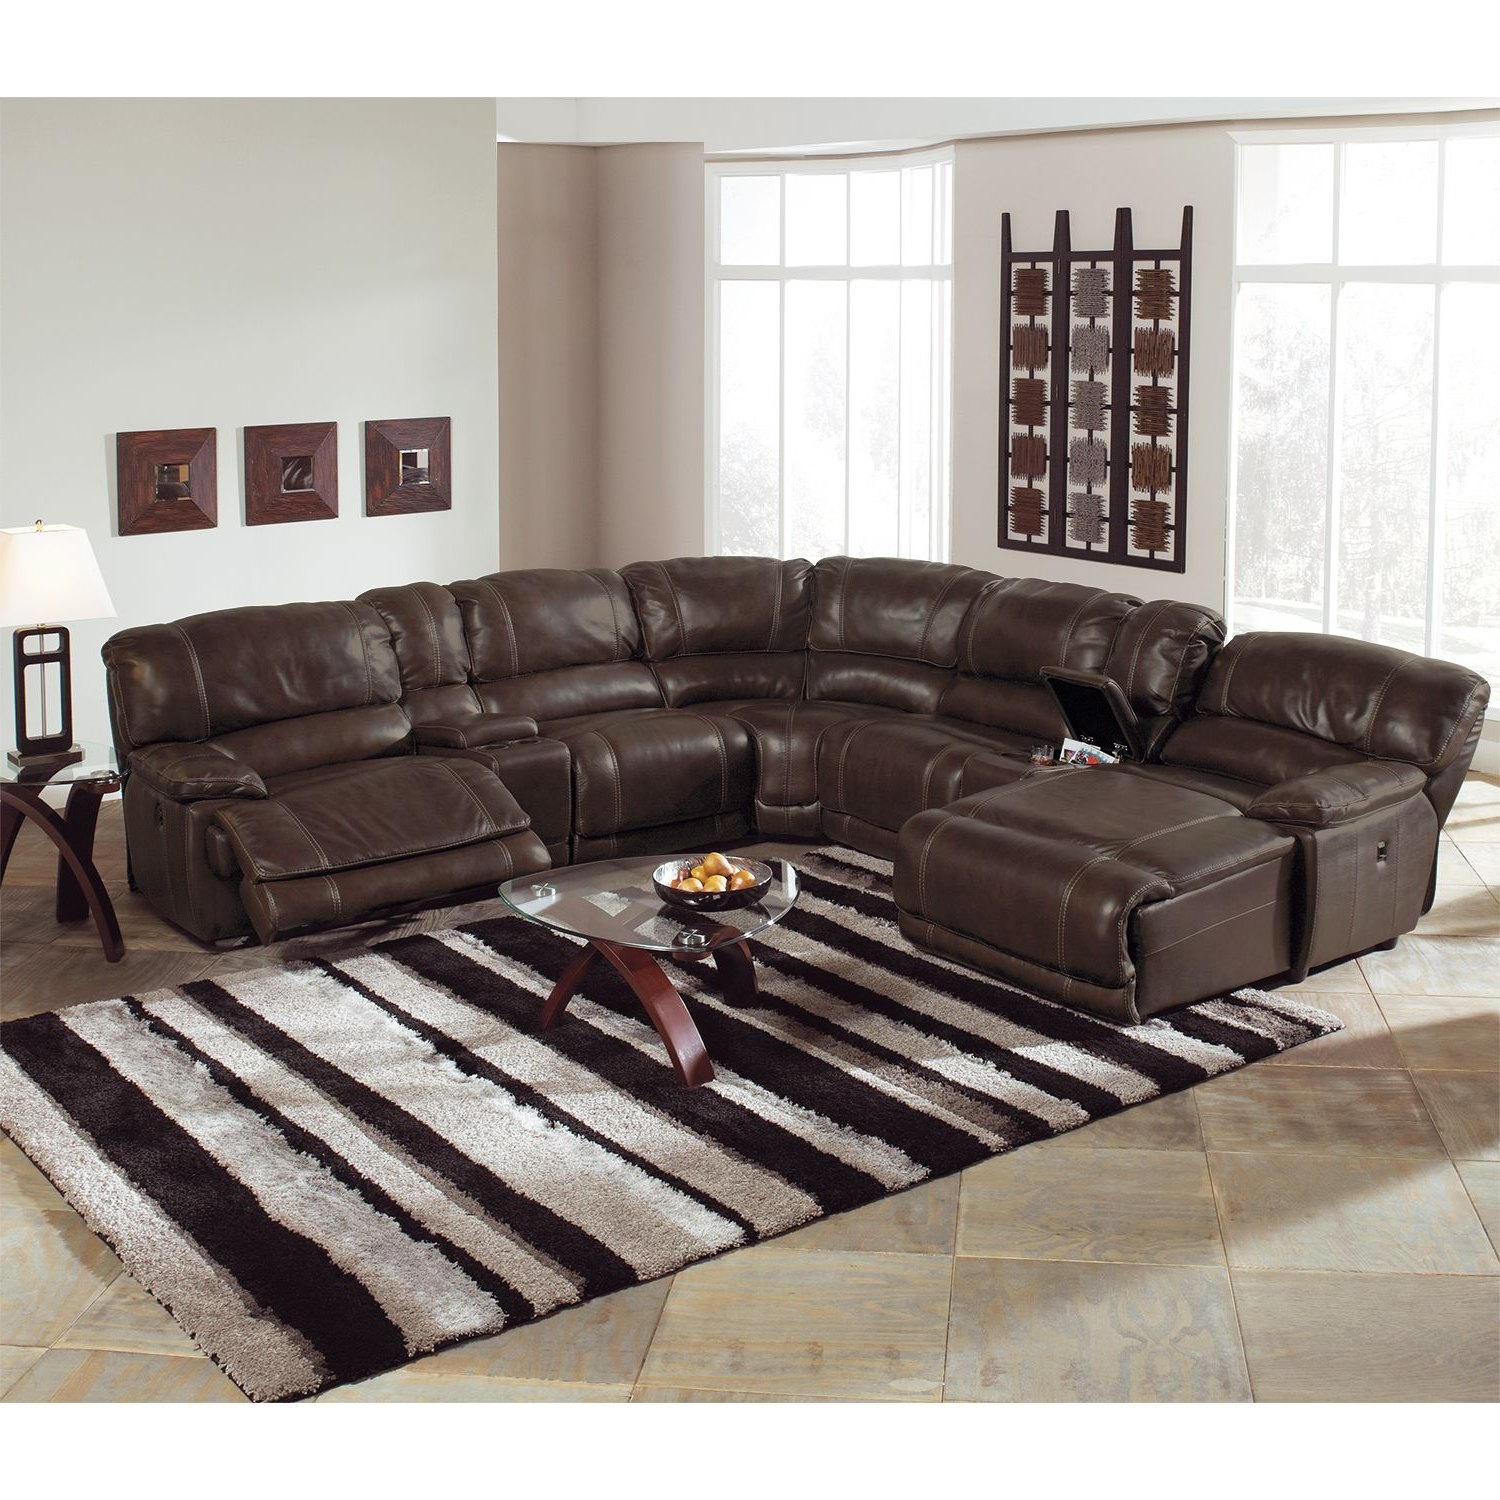 Value City With Jackson 6 Piece Power Reclining Sectionals With  Sleeper (Gallery 15 of 20)